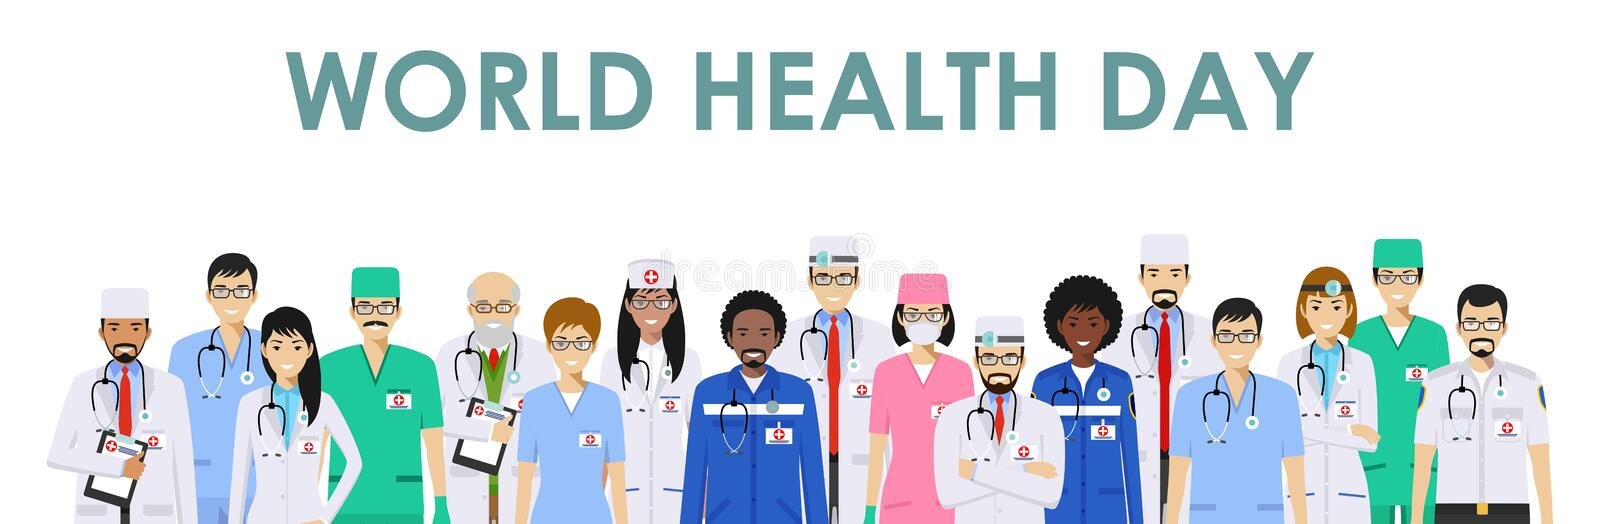 World Health Day. Medical concept. Detailed illustration of doctor and nurses in flat style isolated on white background. World Health Day concept. Detailed vector illustration